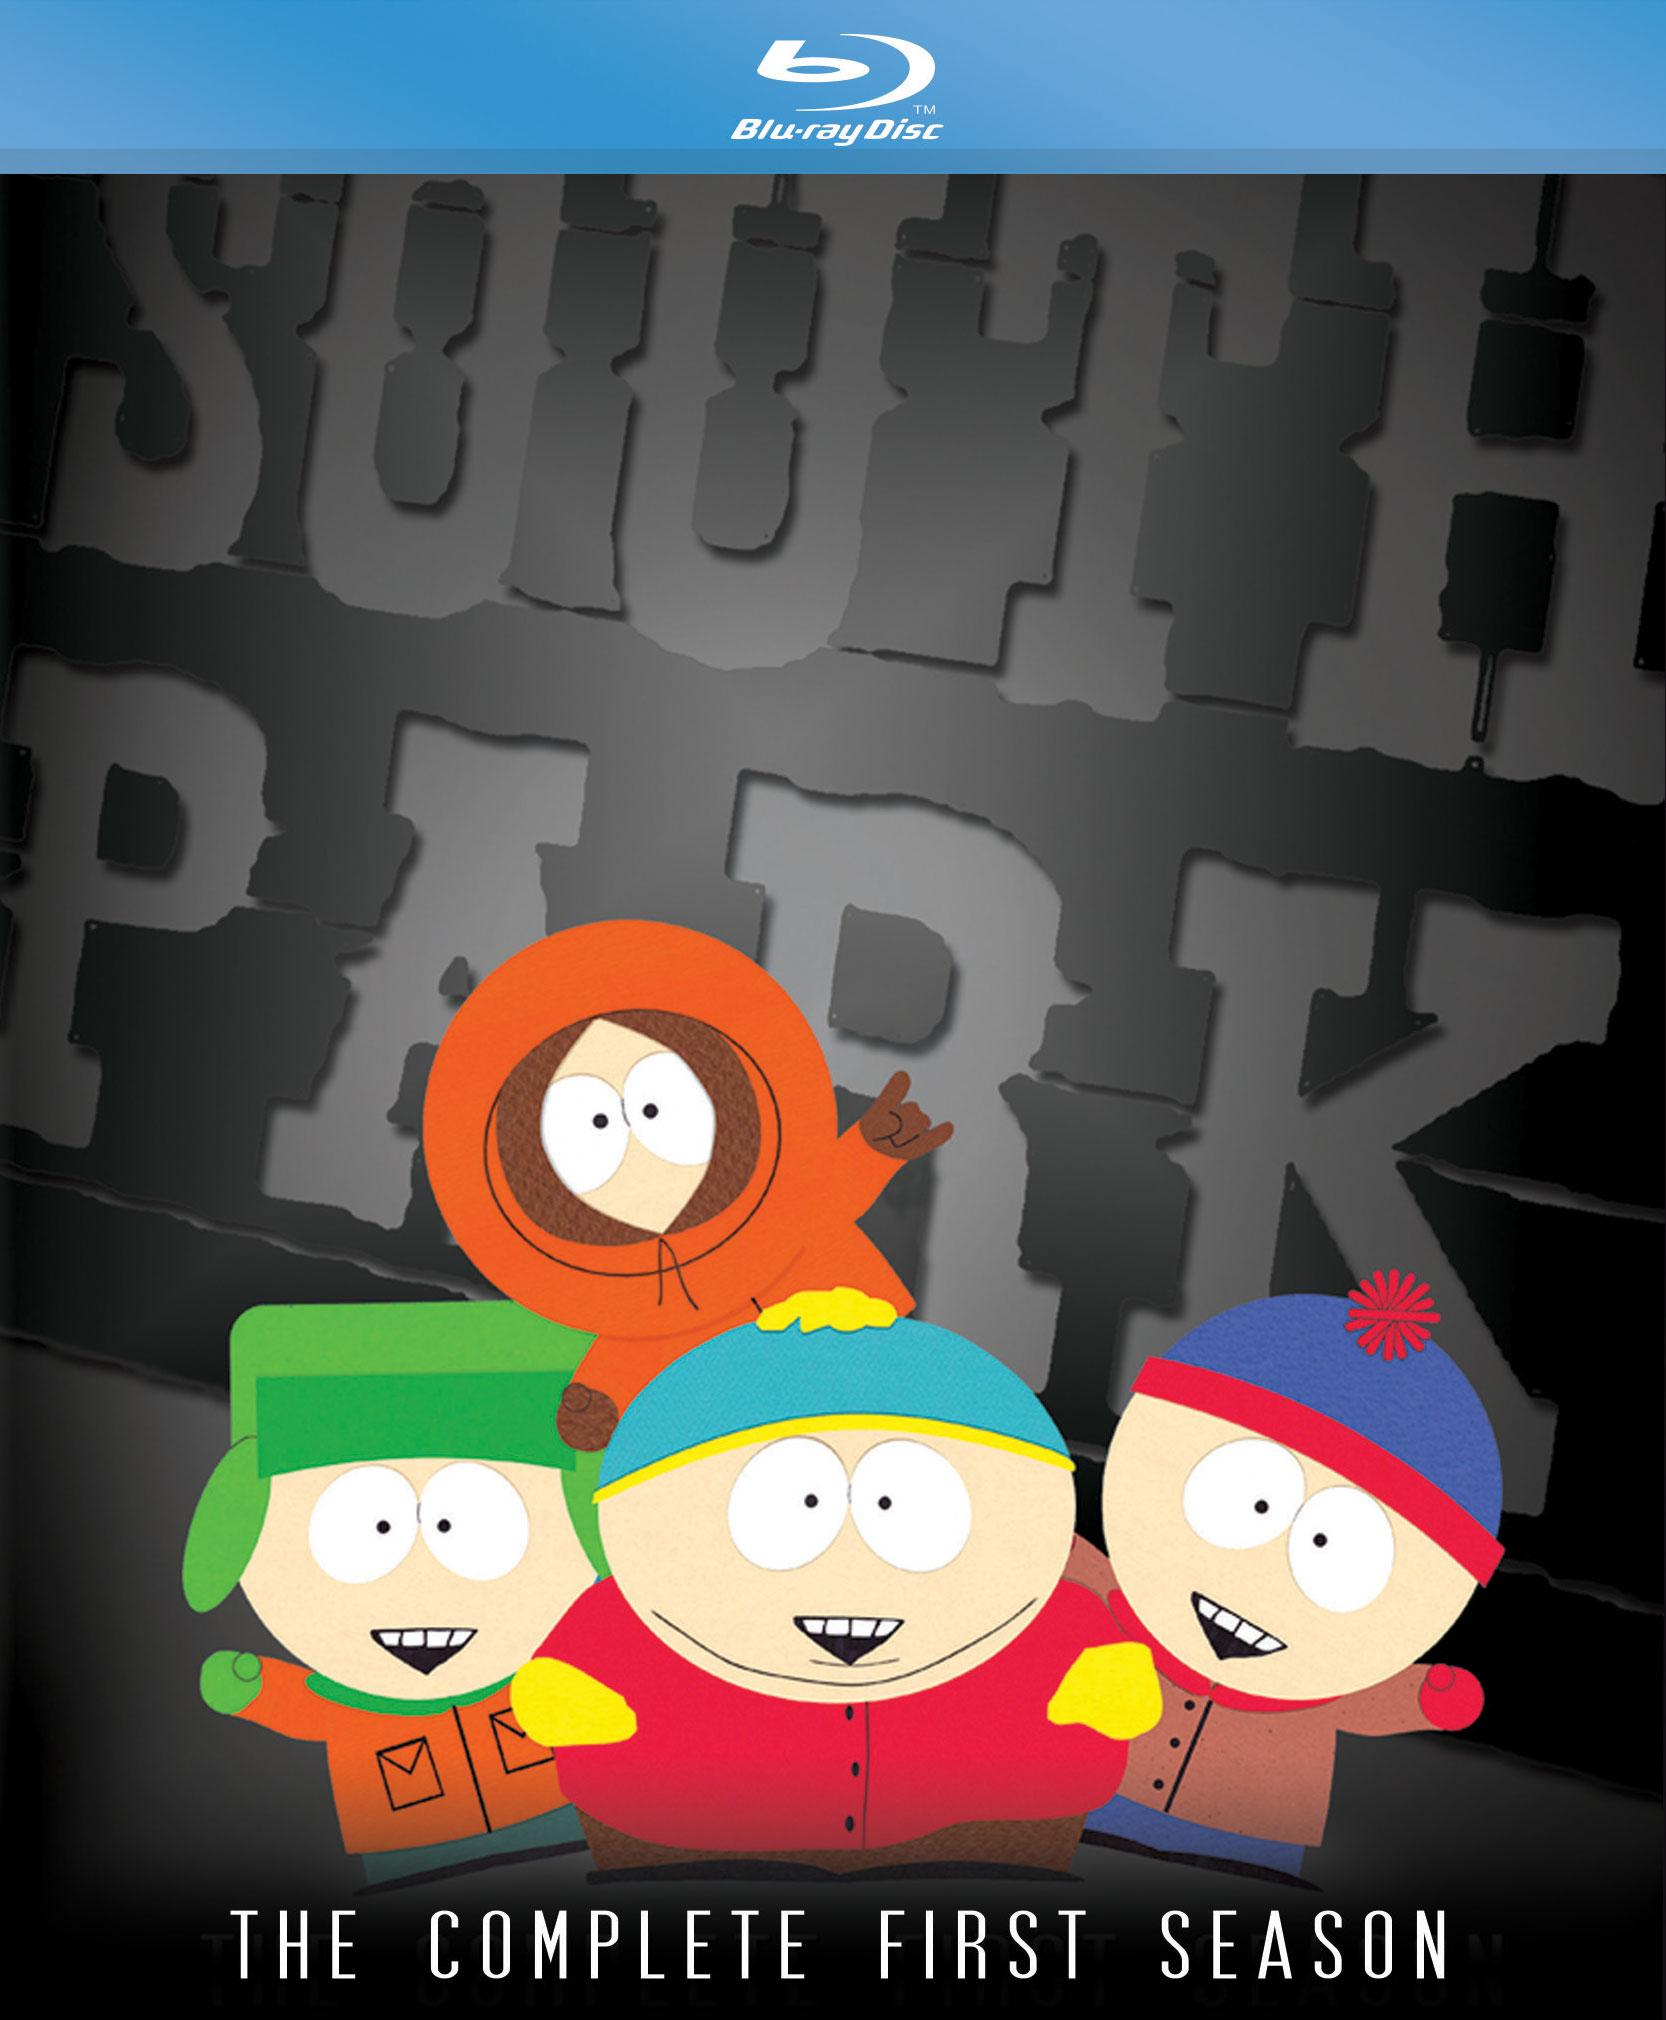 New South Park Season 2020 South.Park.Season.1 Blu ray.Cover | Screen Connections